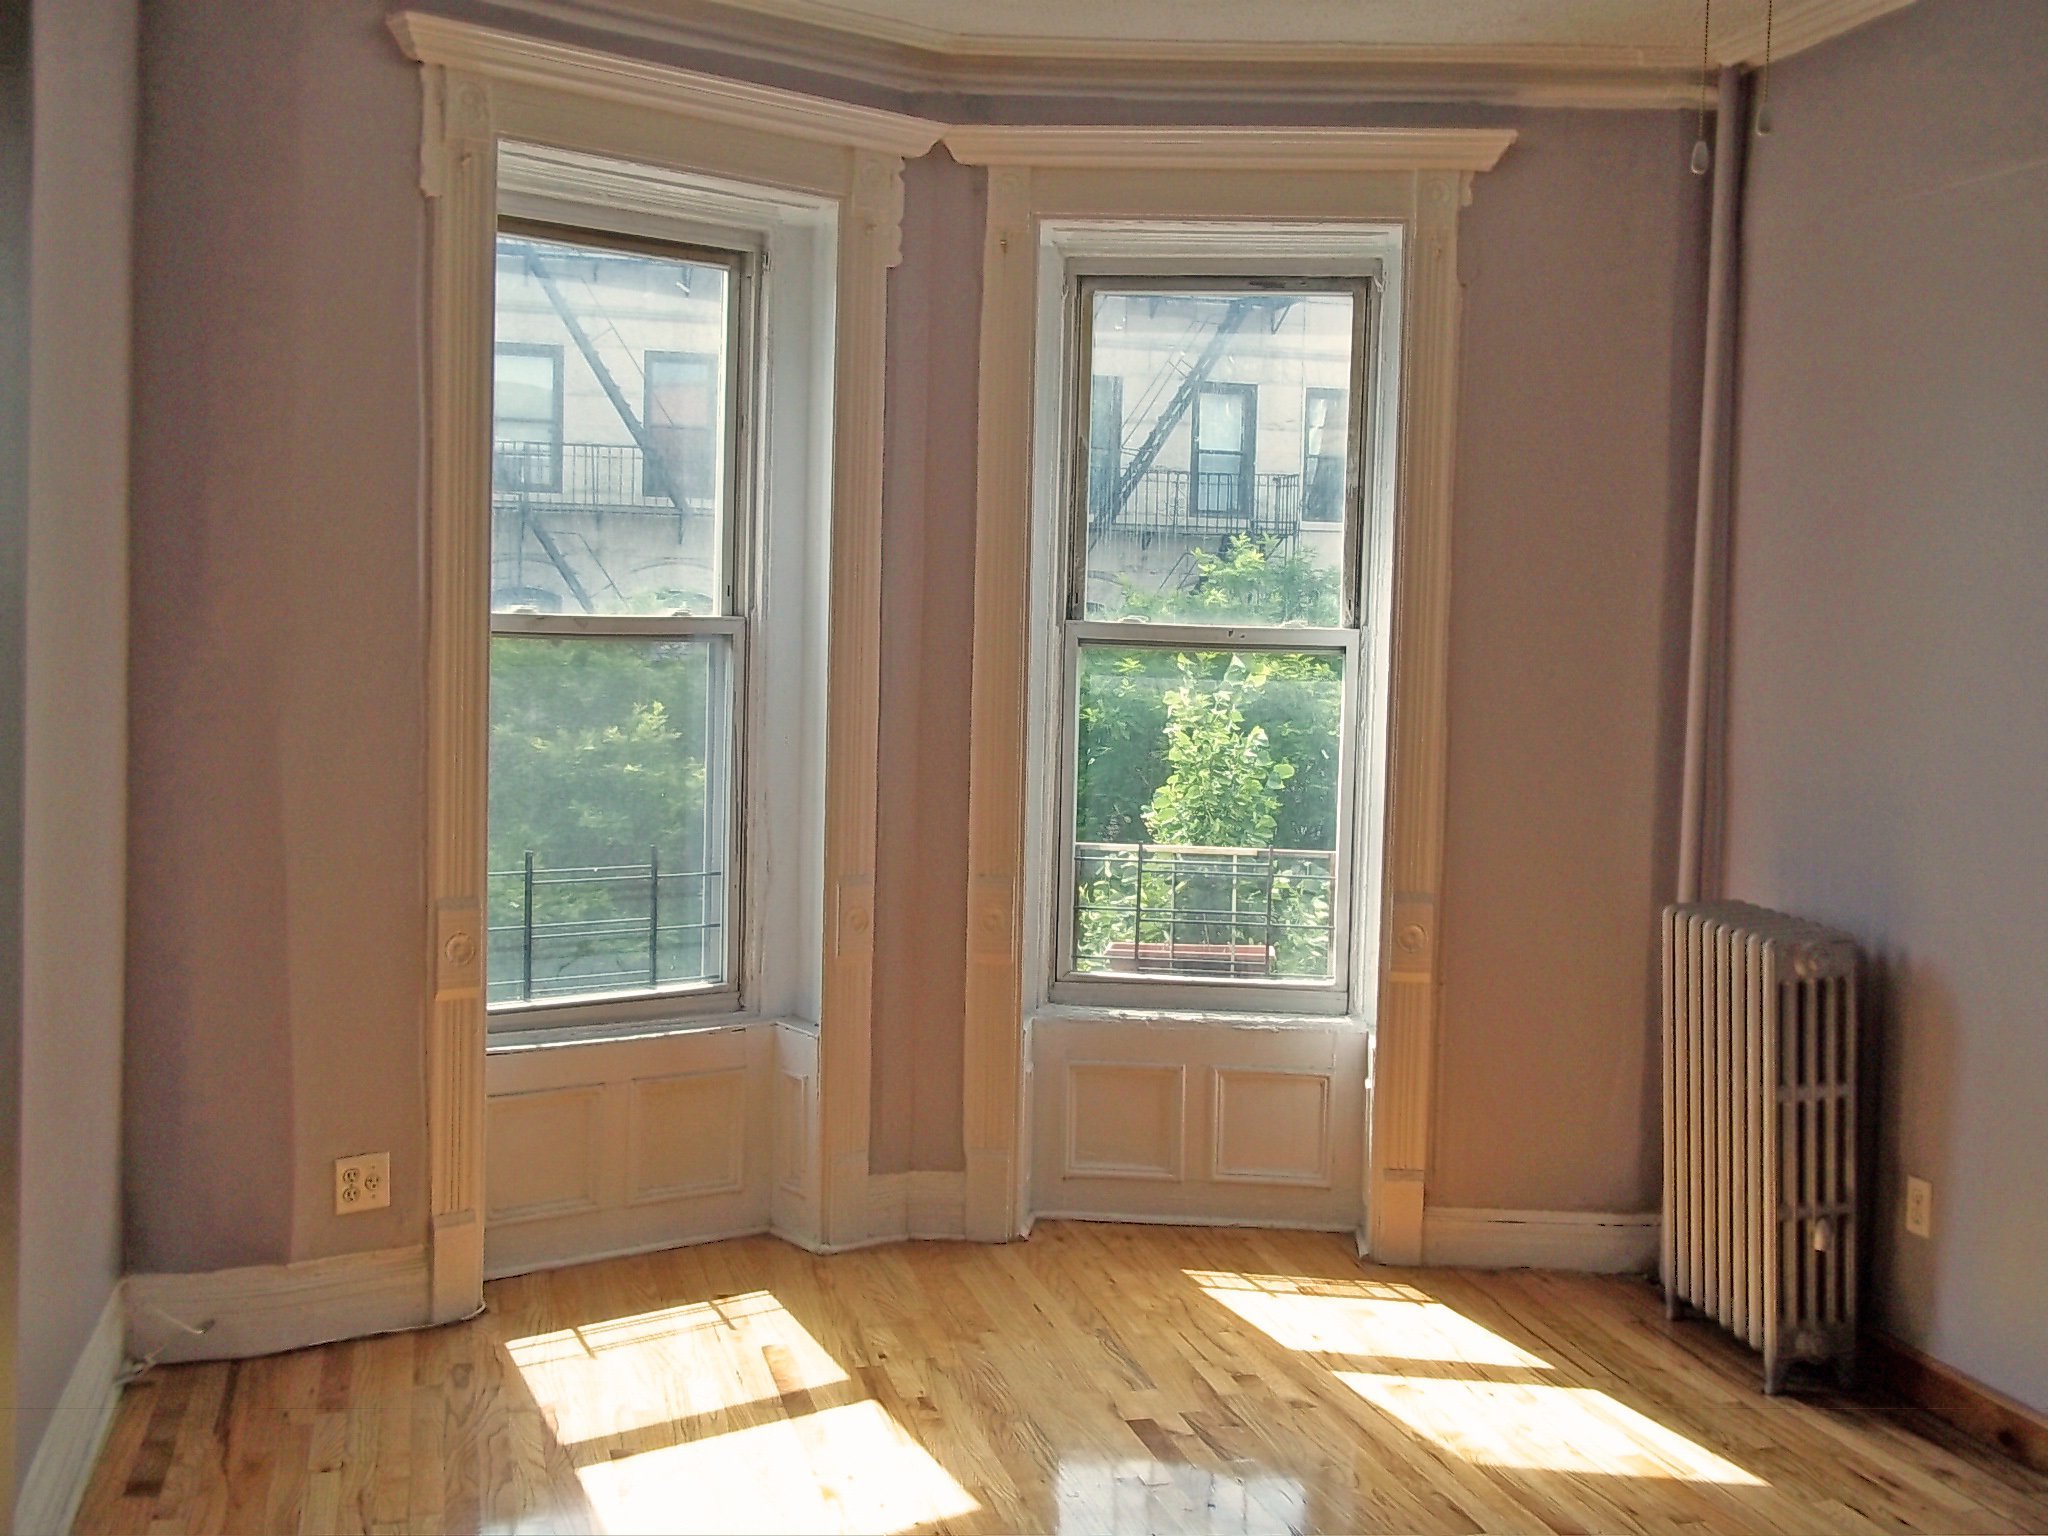 Bed Stuy 1 Bedroom Apartment for Rent CRG3114. Johnny Lee  Agent at Corley Realty Group